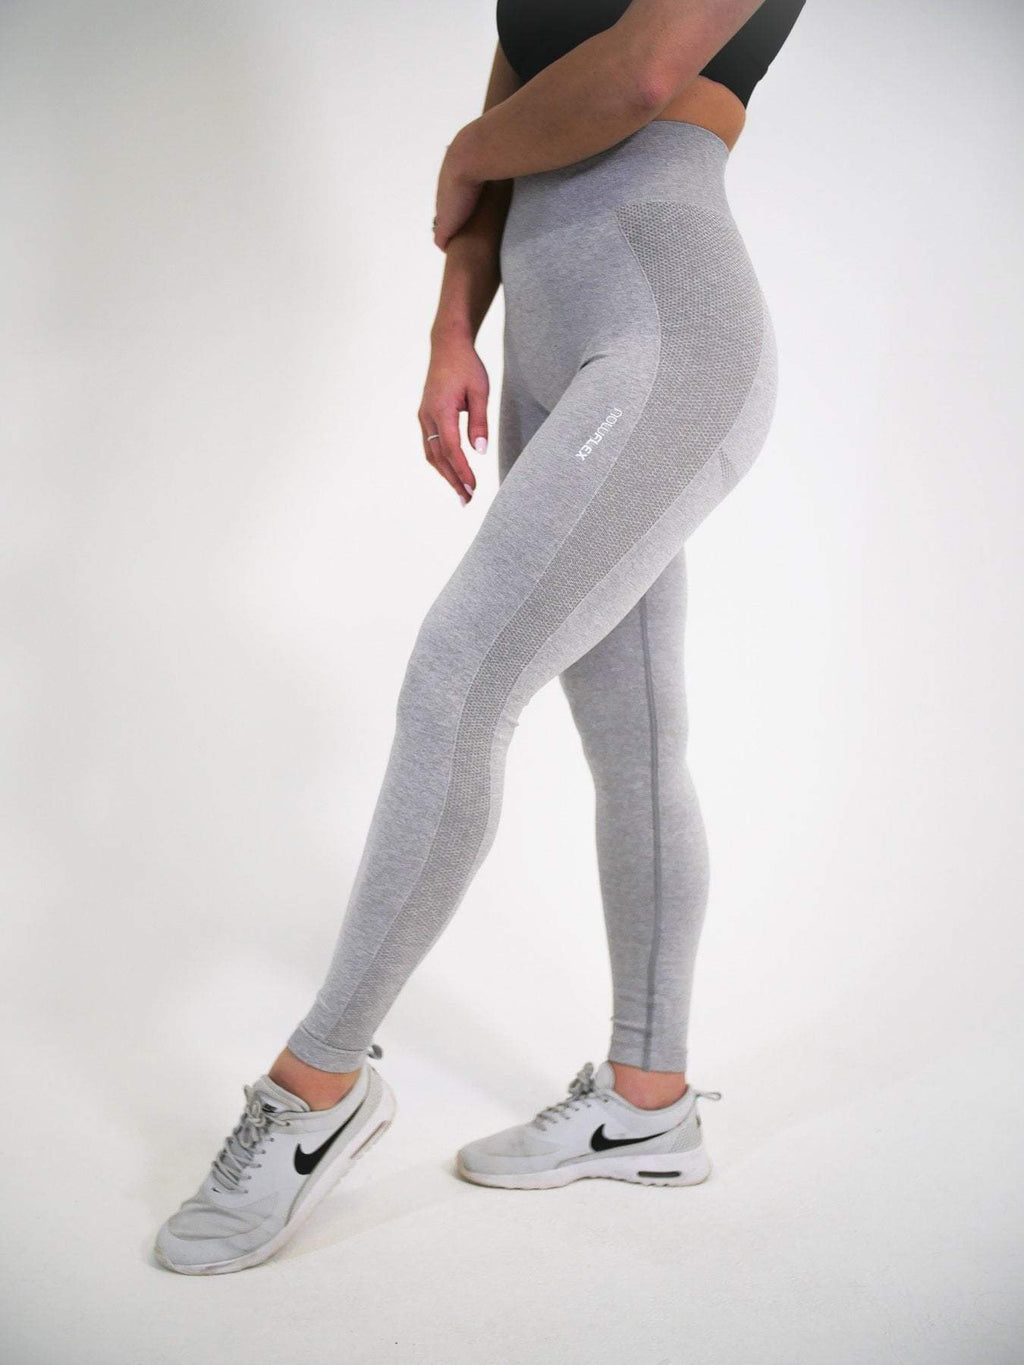 Now Flex Tights XS FLEX Seamless Leggings - Steel